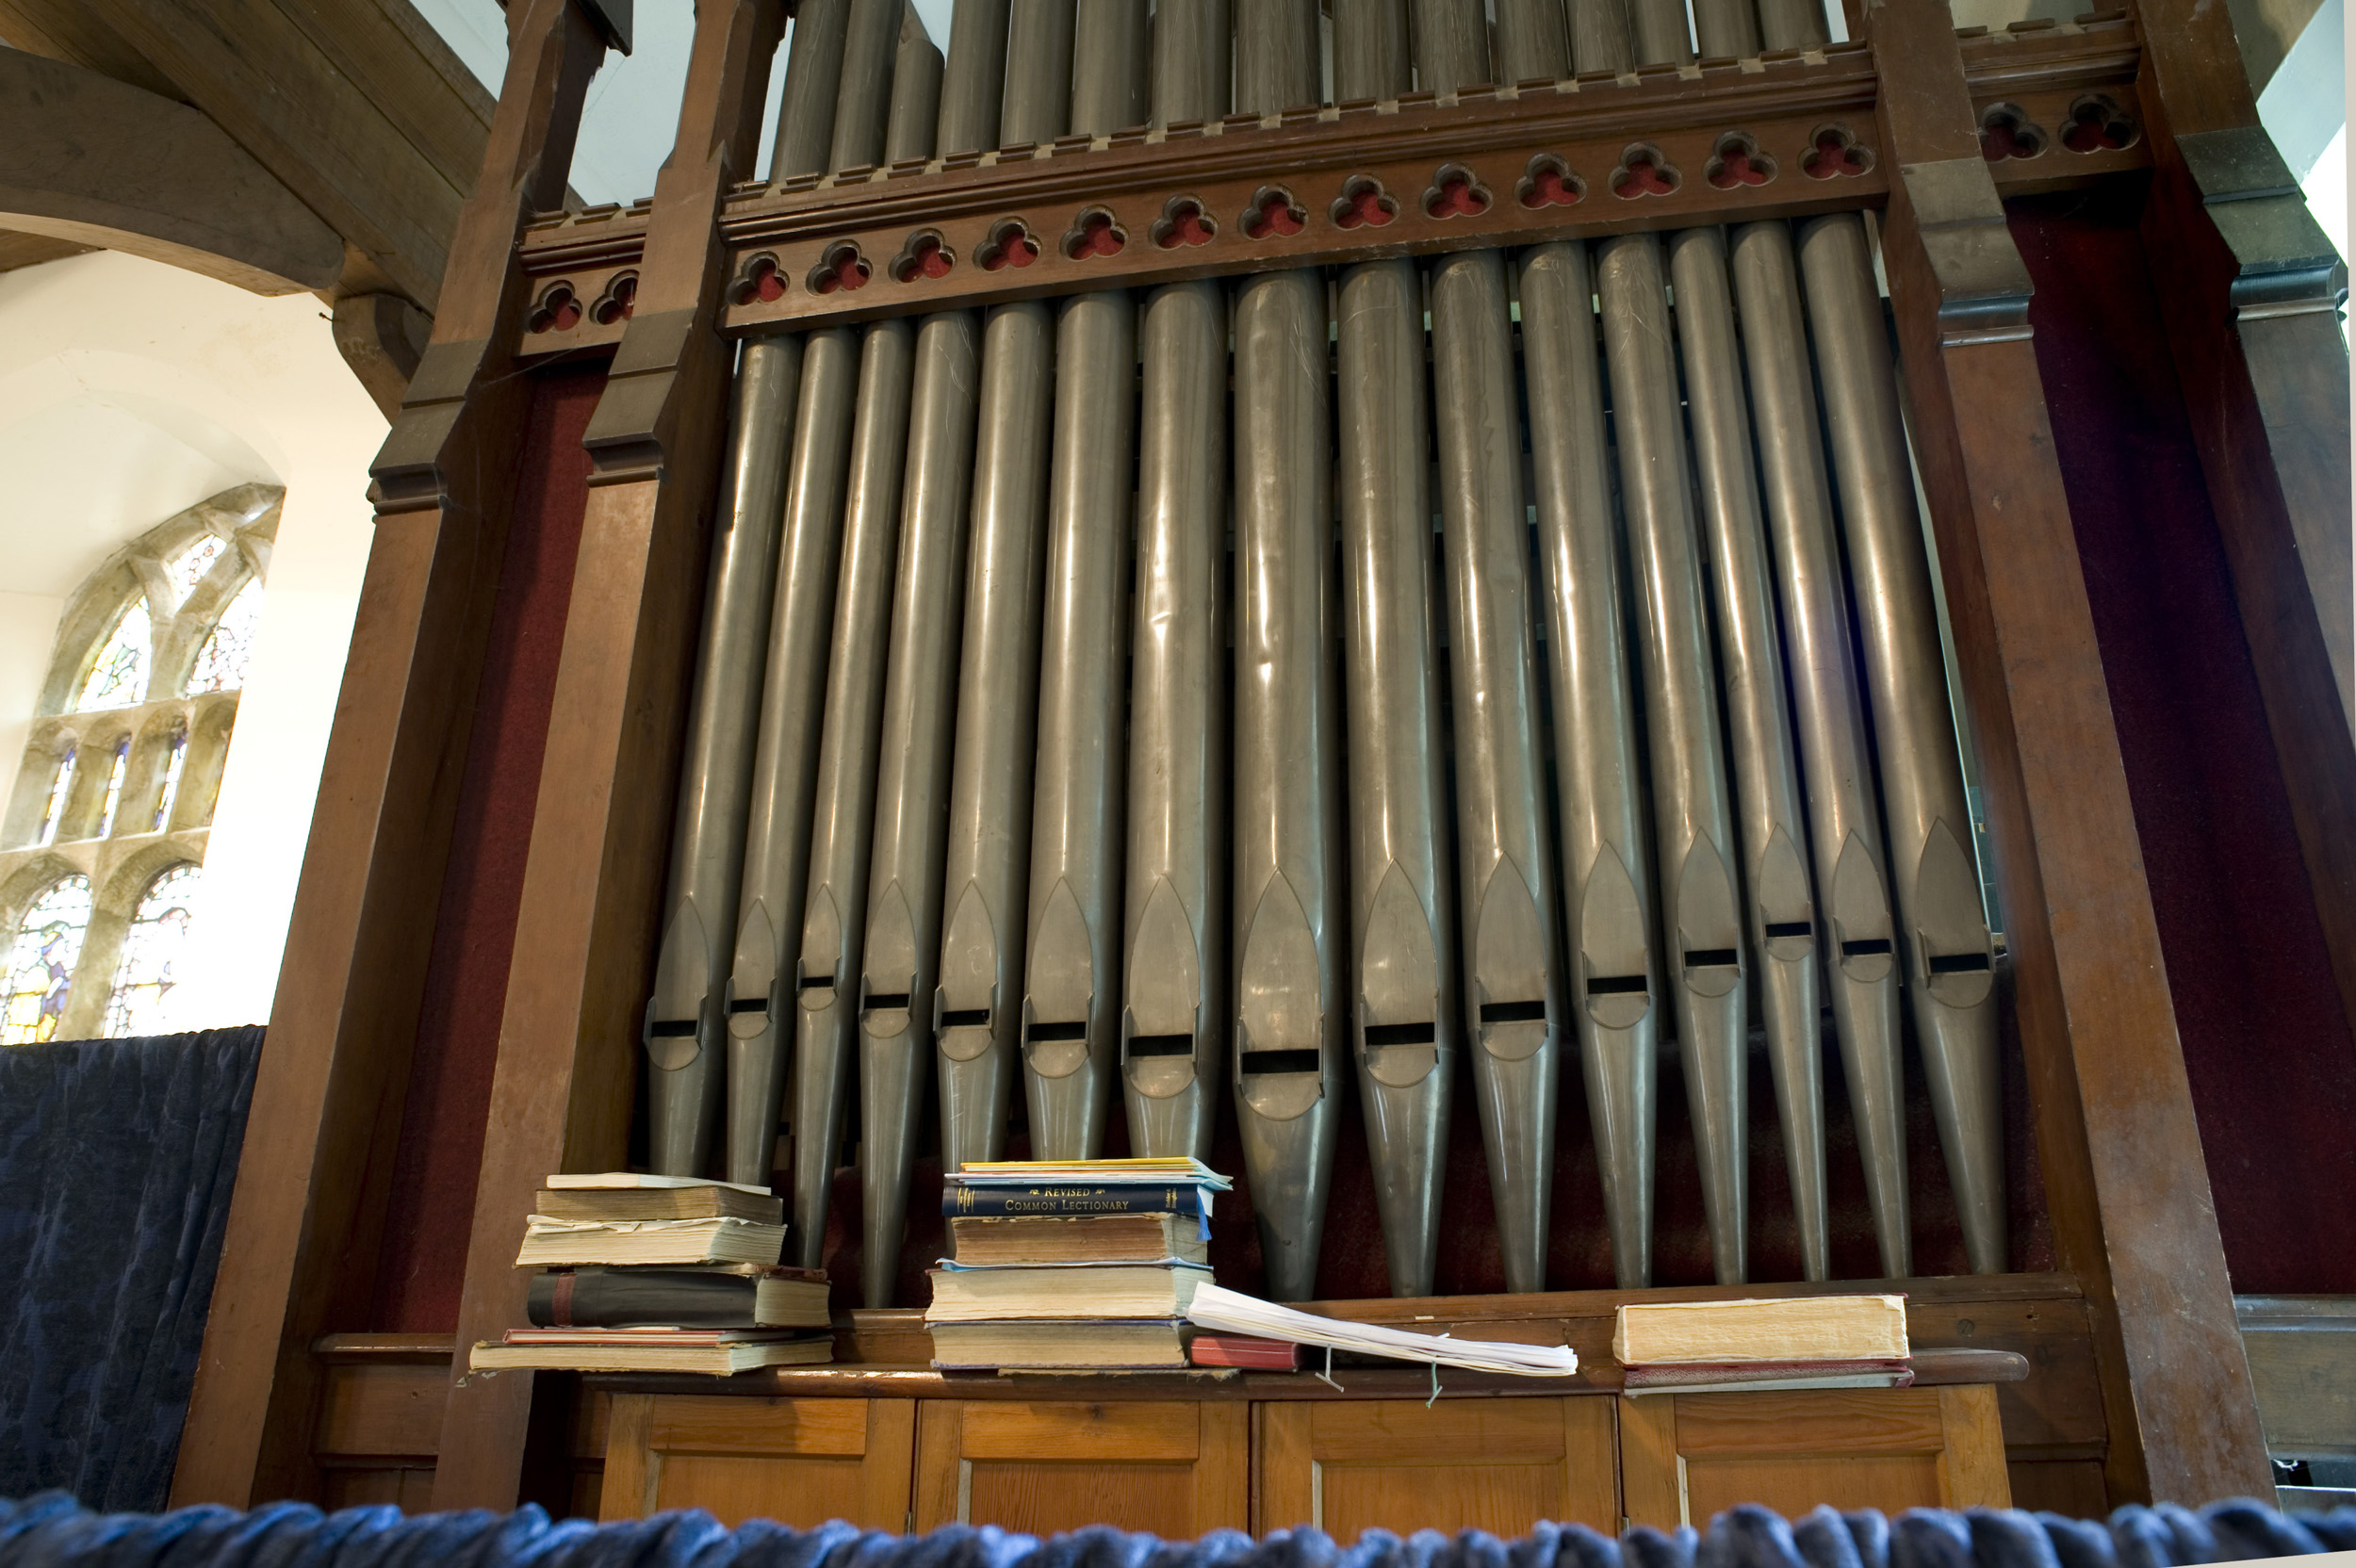 church_organ_pipes.jpg - Tall church organ pipes mounted in a wooden frame surround in a small country church